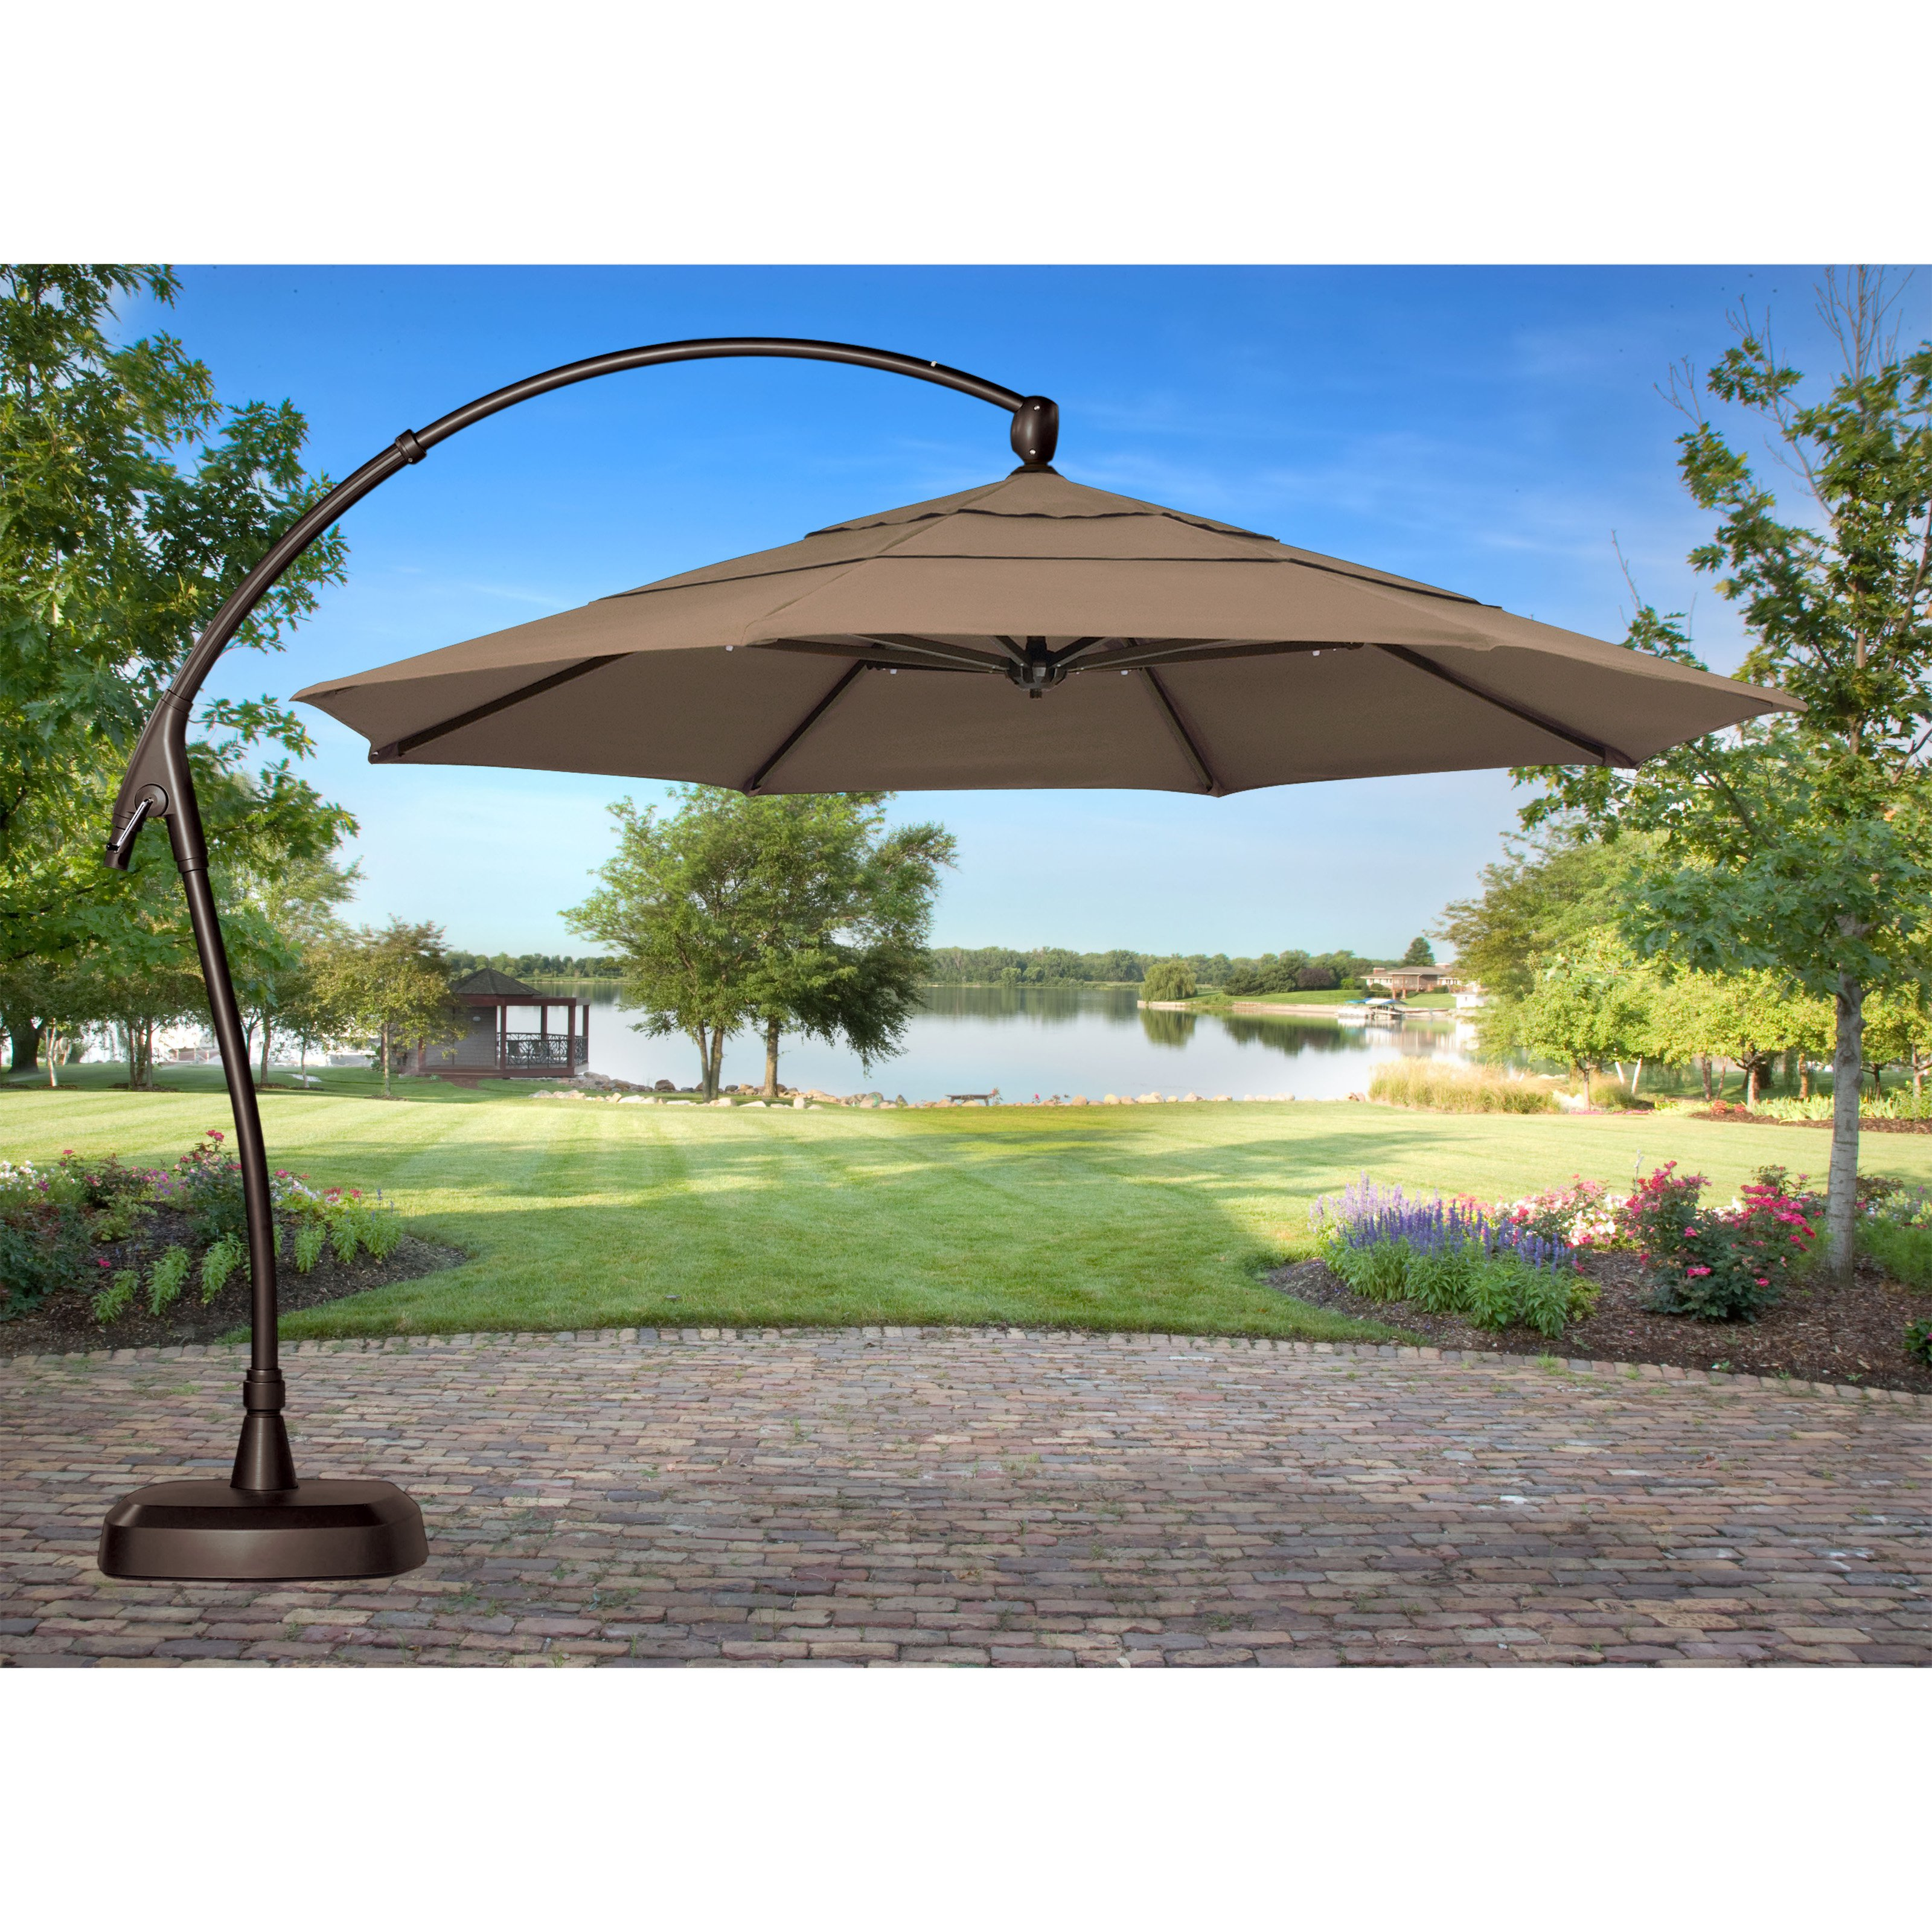 Best obravia cantilever offset patio umbrella with base | hayneedle fwufnsa